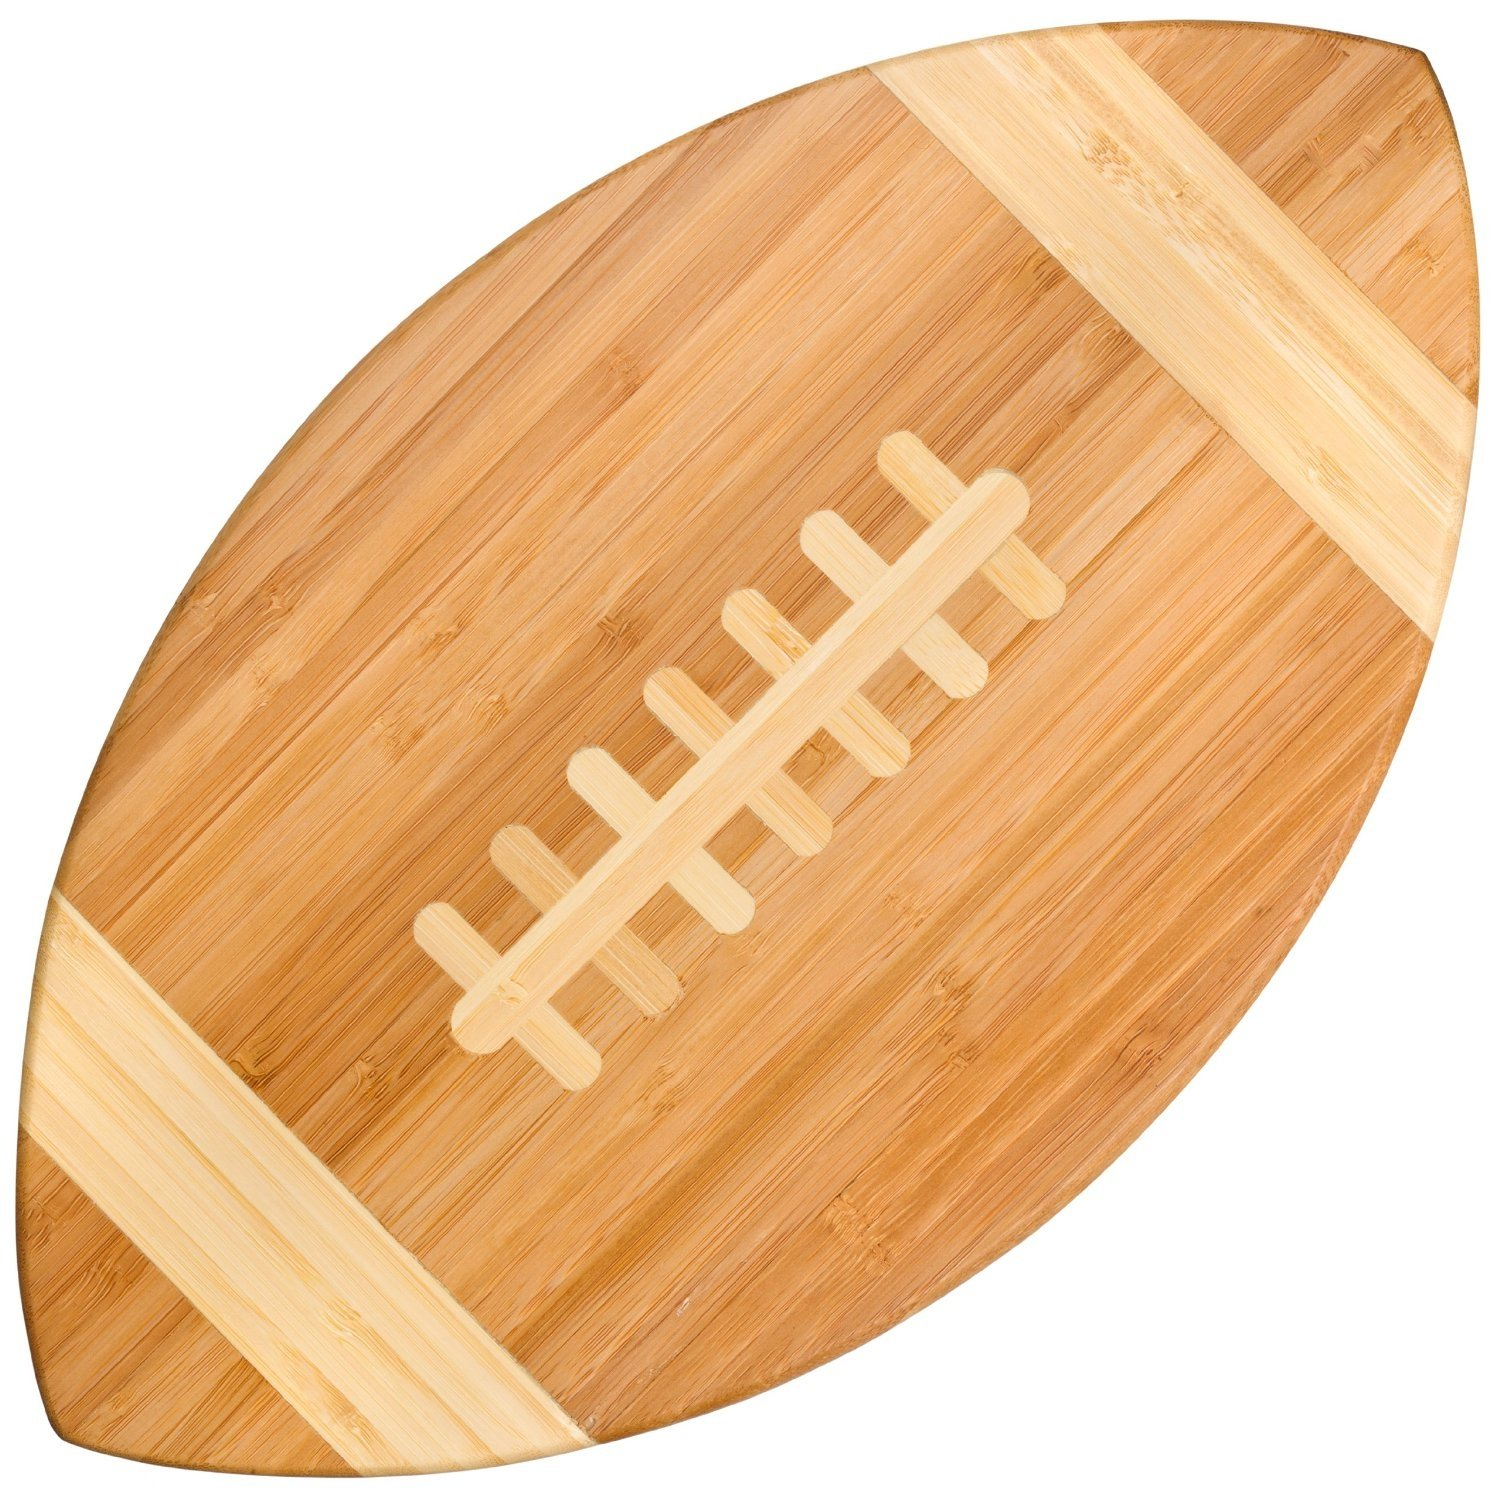 Bamboo Football Cutting Board & Serving Tray